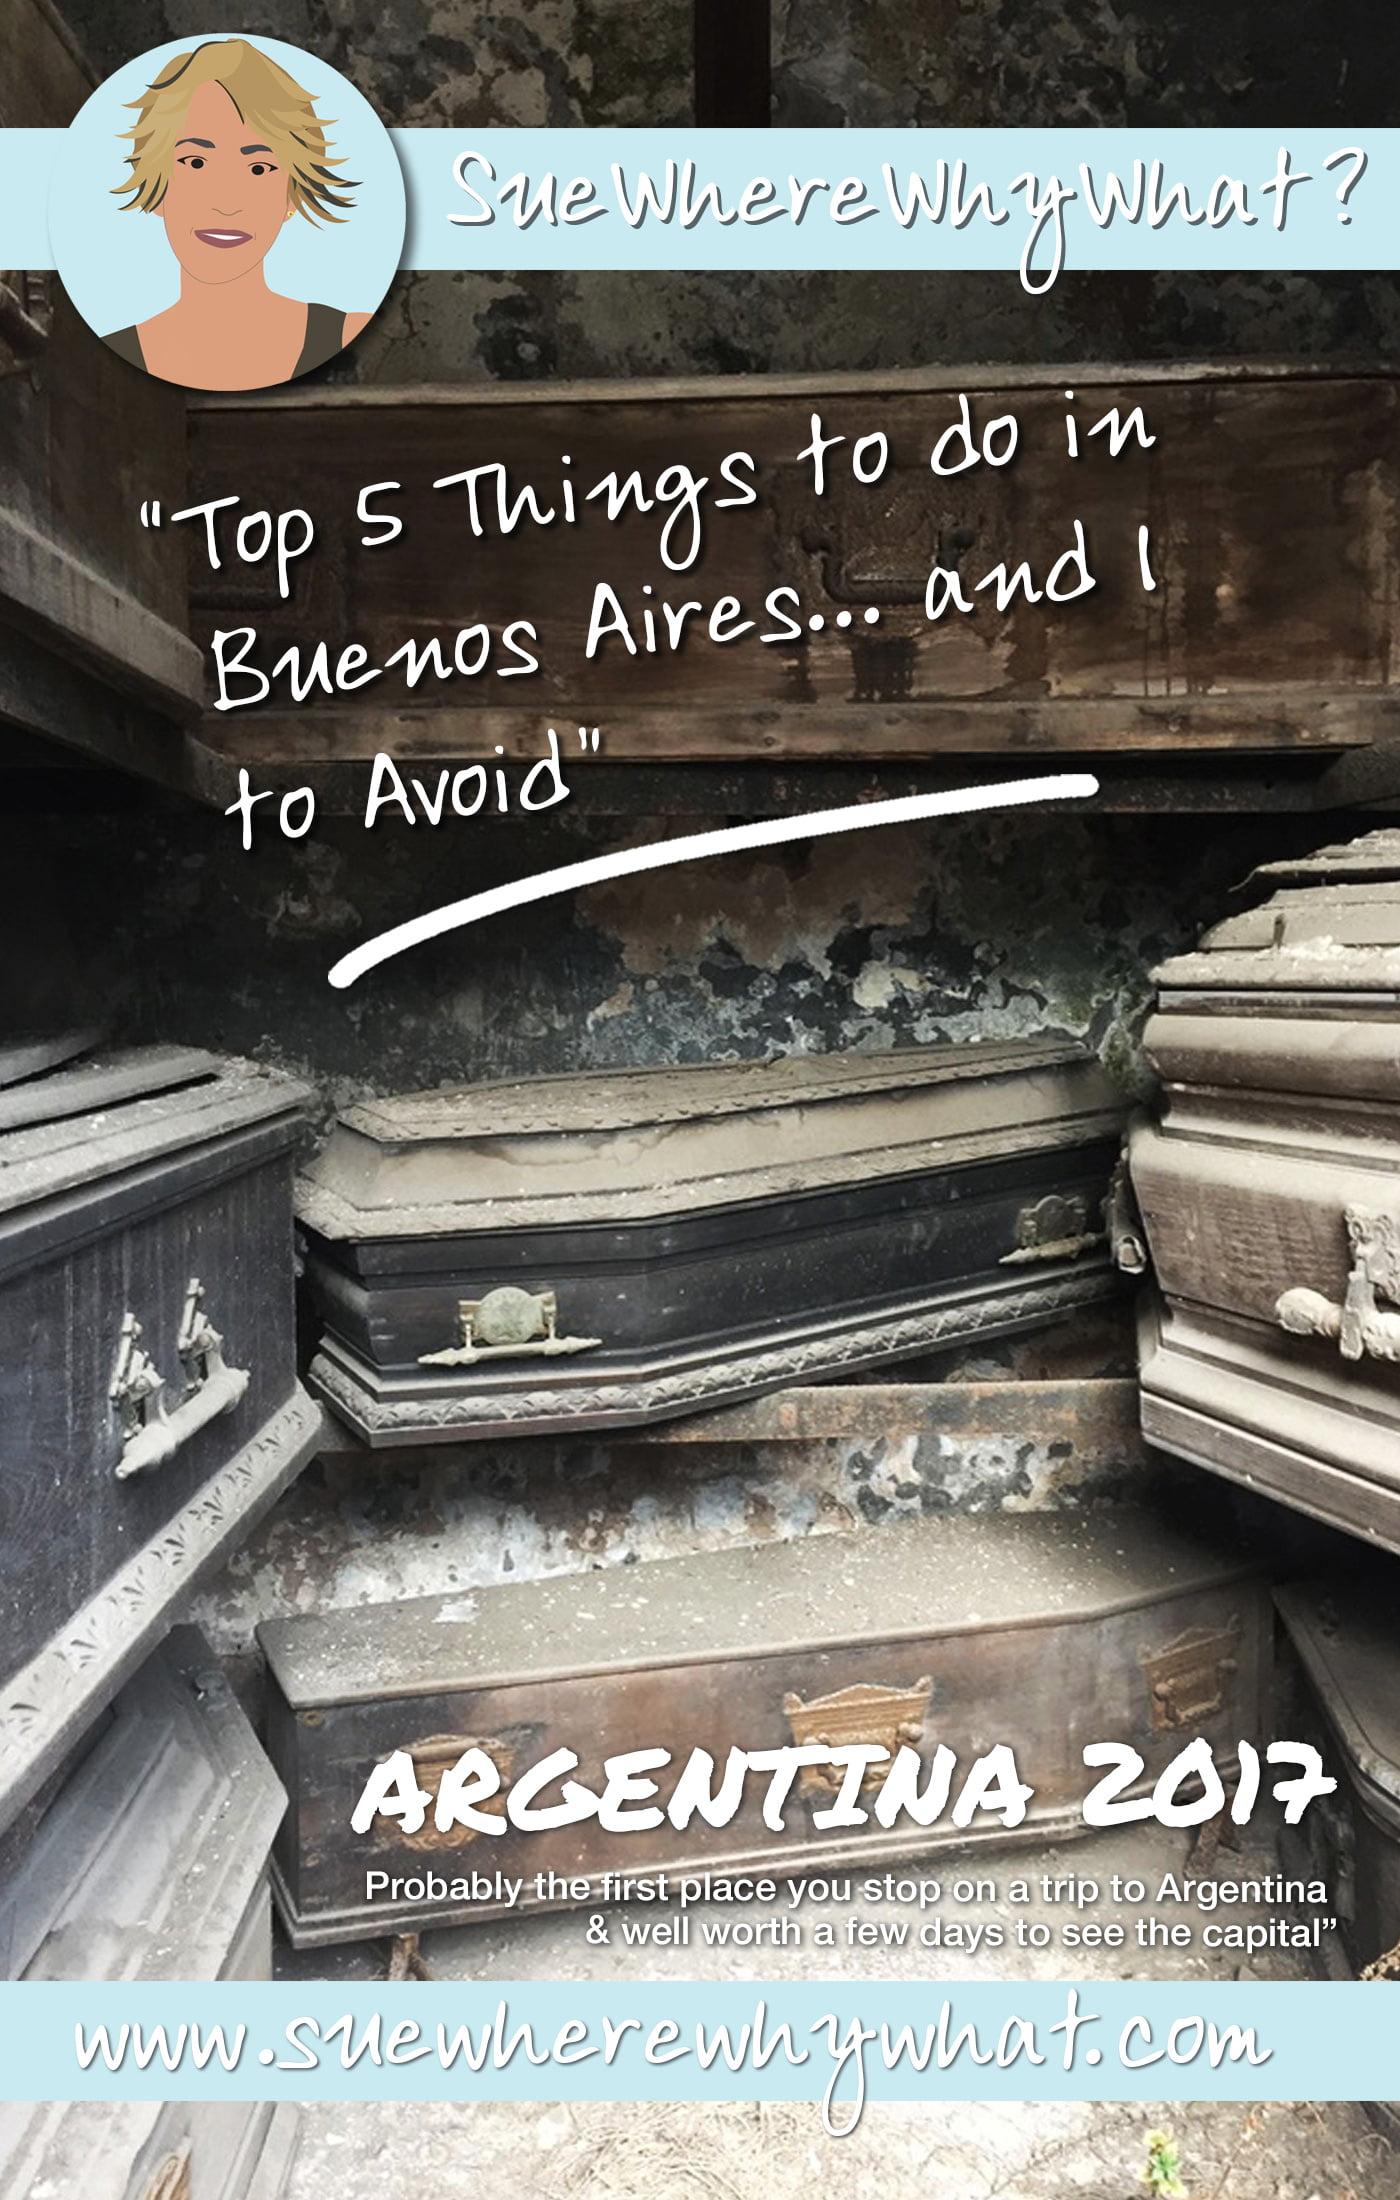 Top 5 Things to do in Buenos Aires… and 1 to Avoid